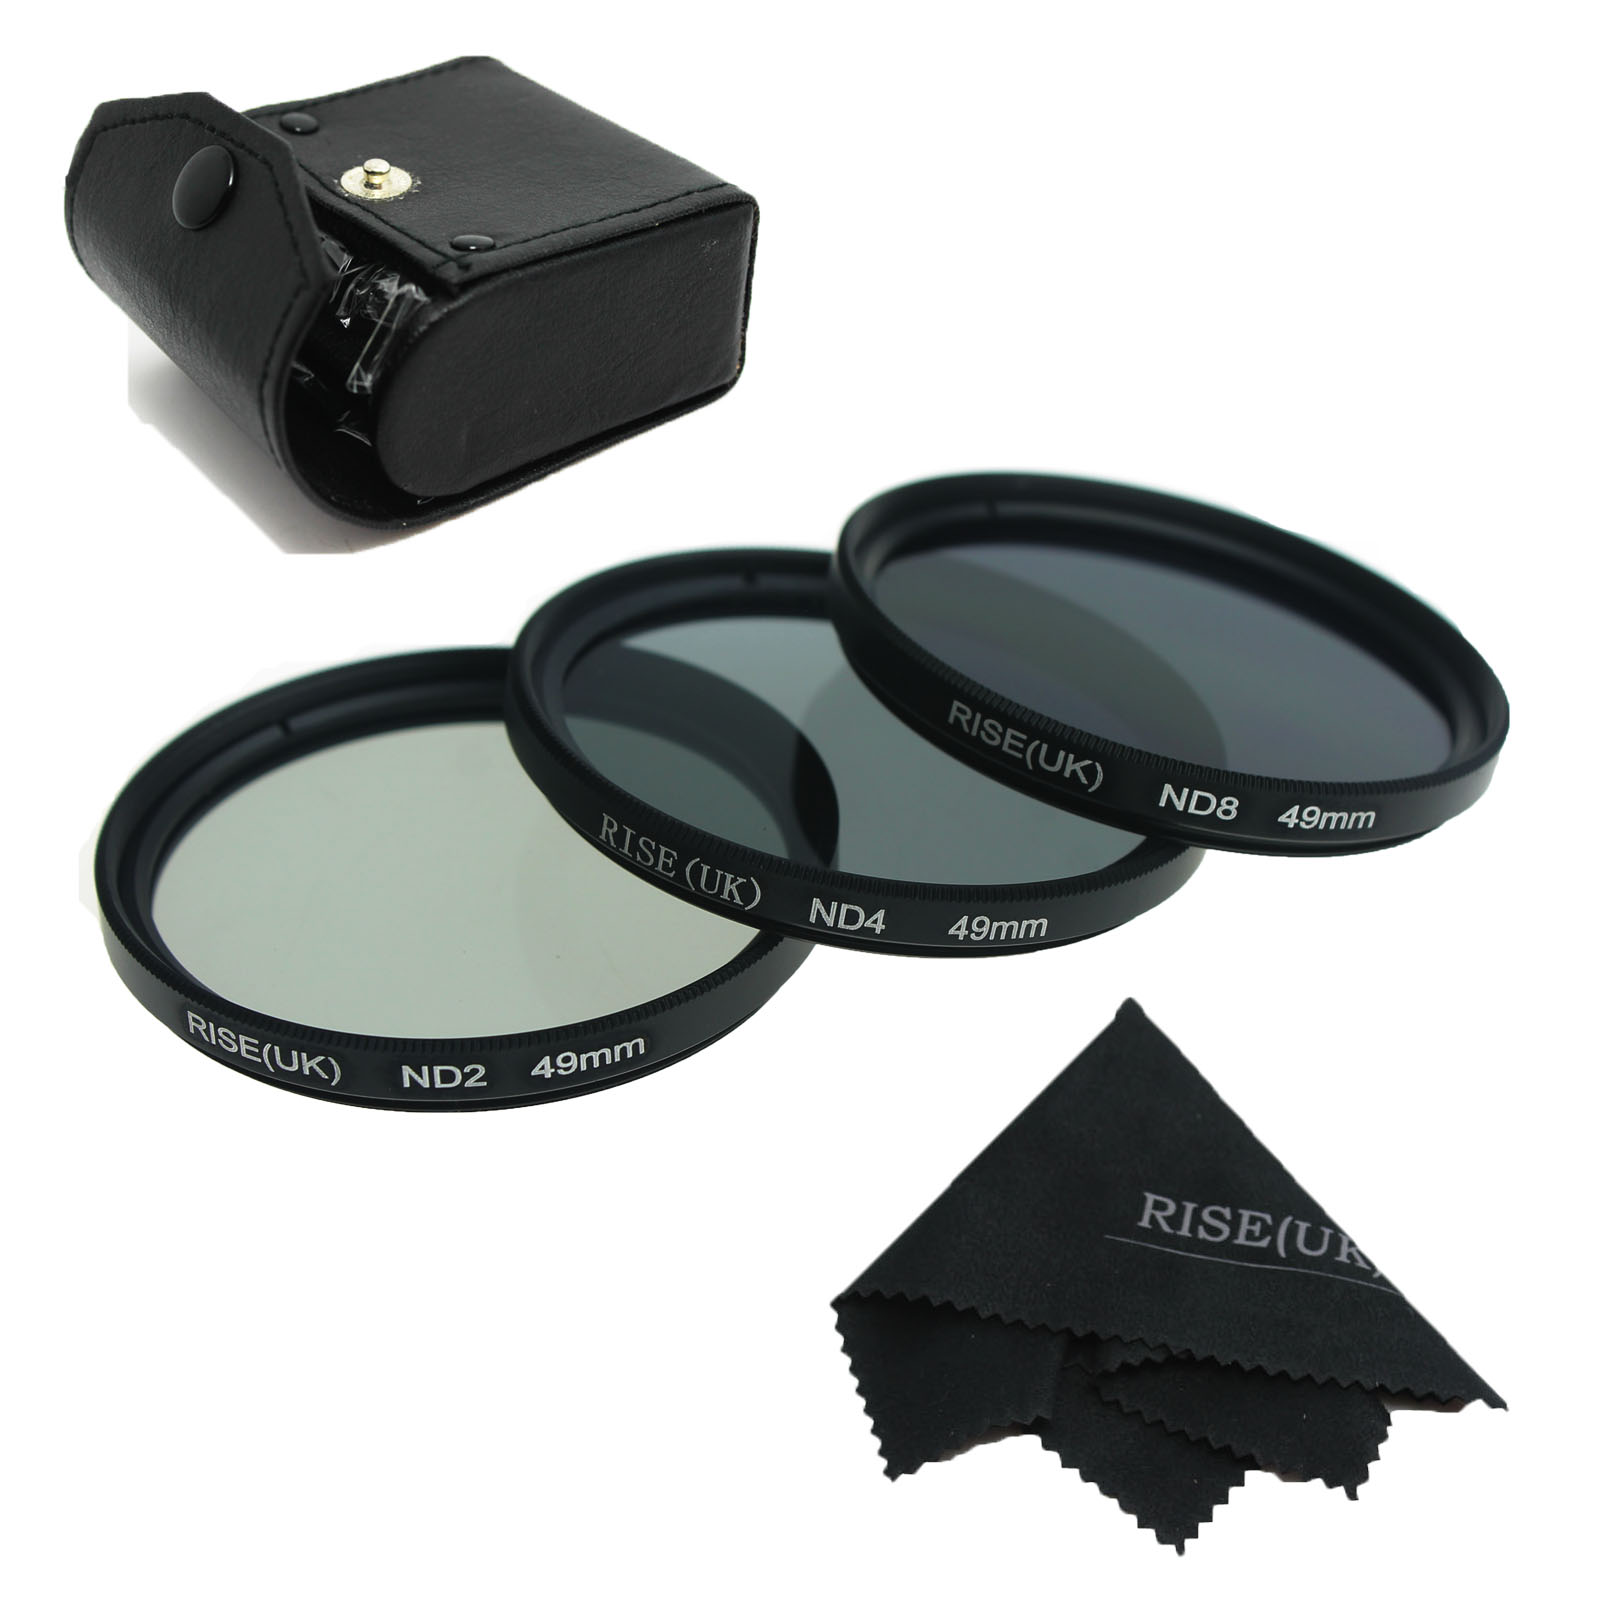 RISE (UK) 49mm 52mm 55mm 58mm 62mm 67mm 72mm 77 MM Neutral Density Filter Objektiv Set Kit ND2 ND4 ND8 ND 2 4 8